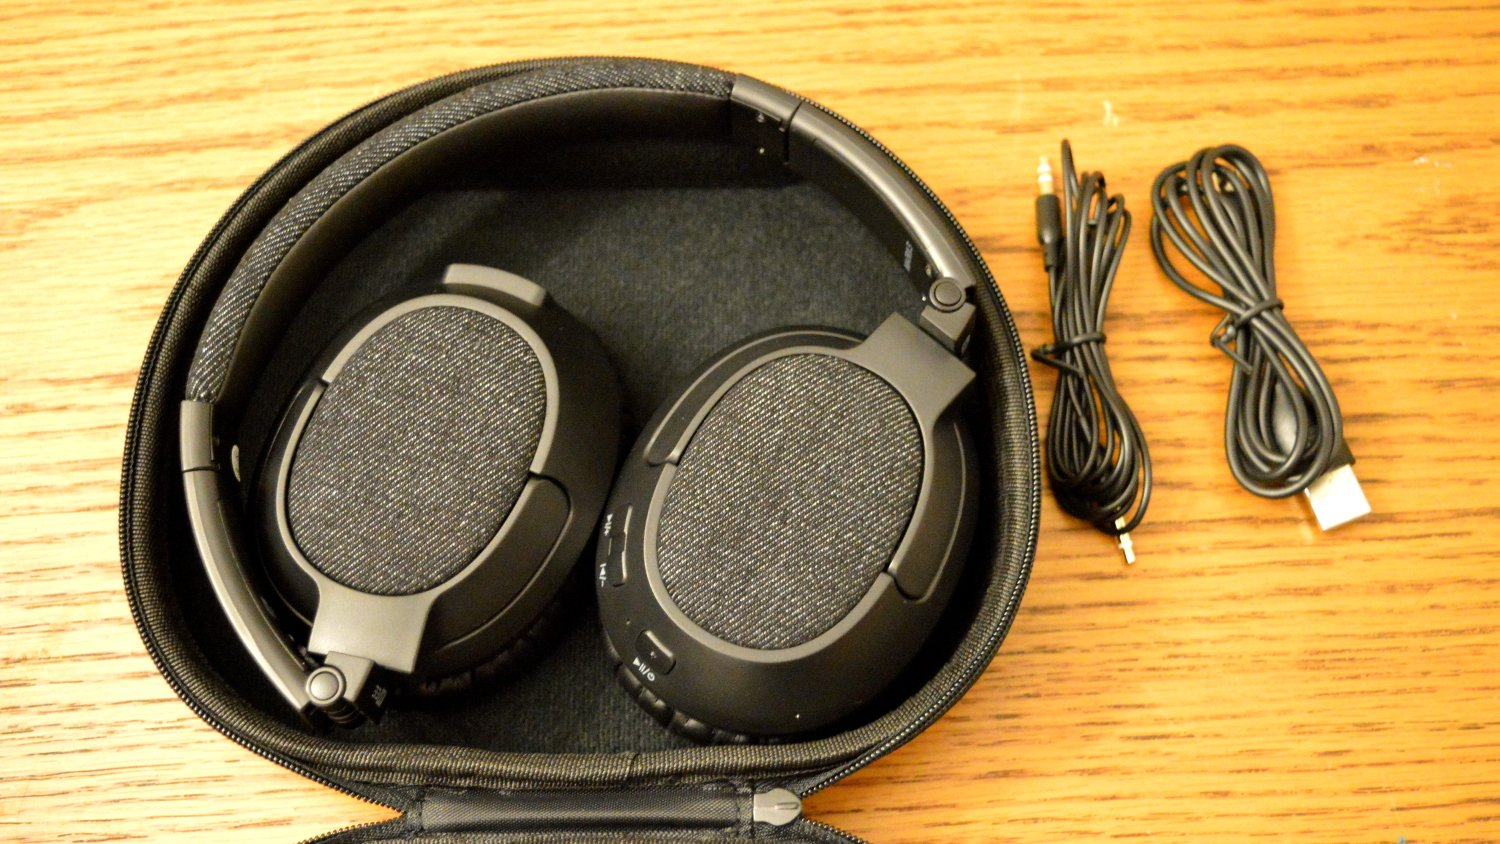 30e9db5bb47 MEE Audio Matrix3 Over-Ear Headphones Review - Headphone Review